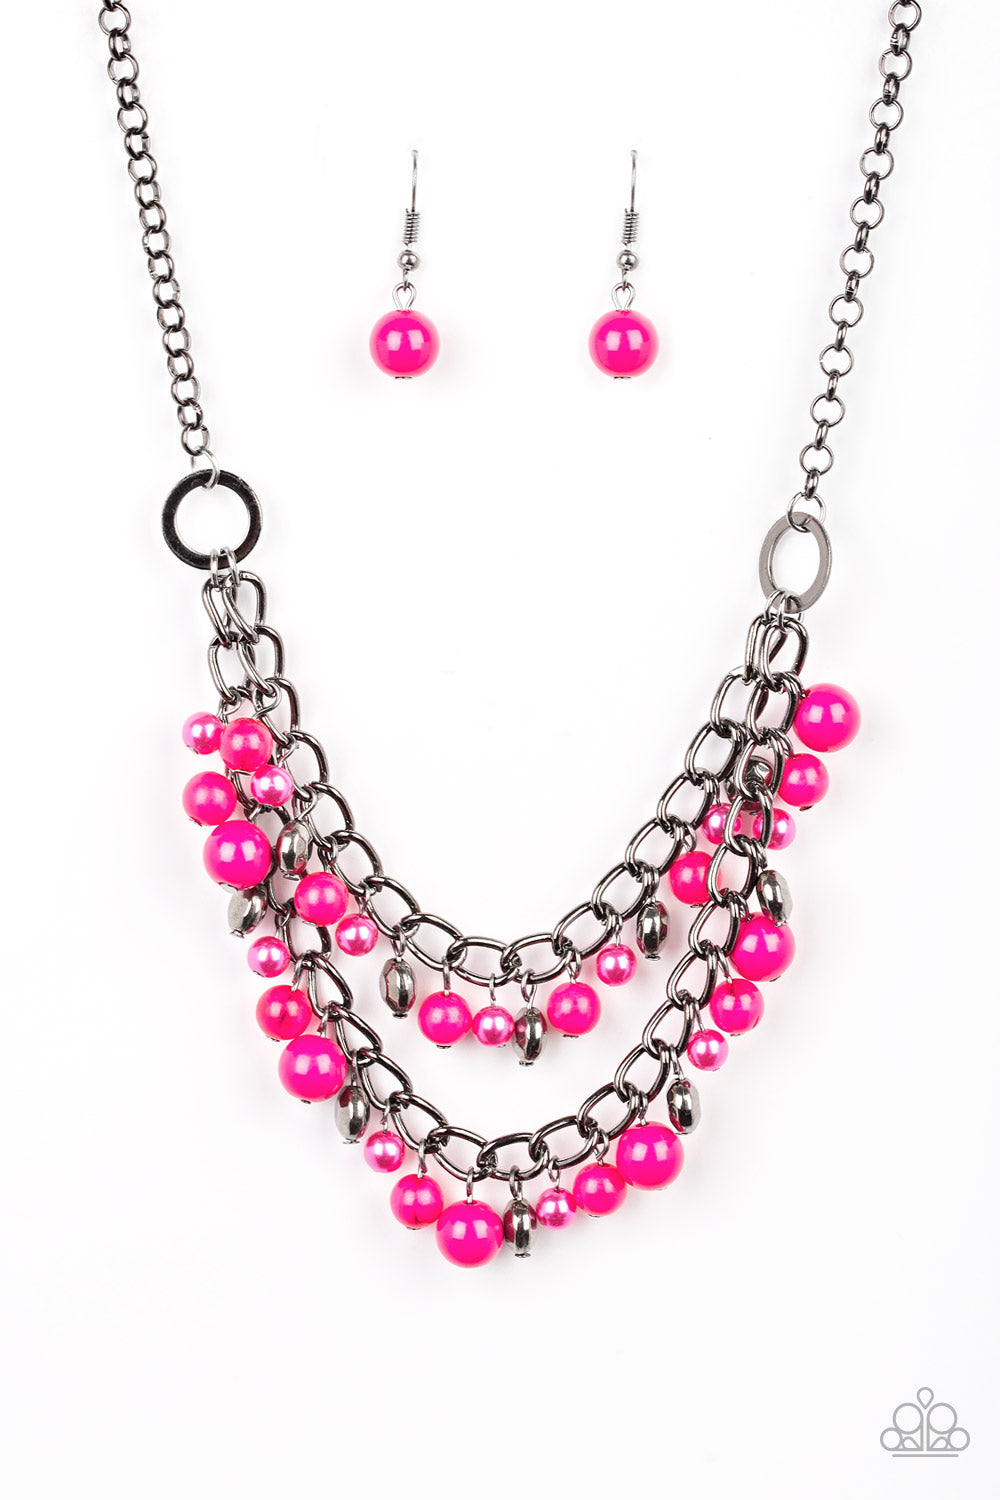 five-dollar-jewelry-watch-me-now-pink-necklace-paparazzi-accessories